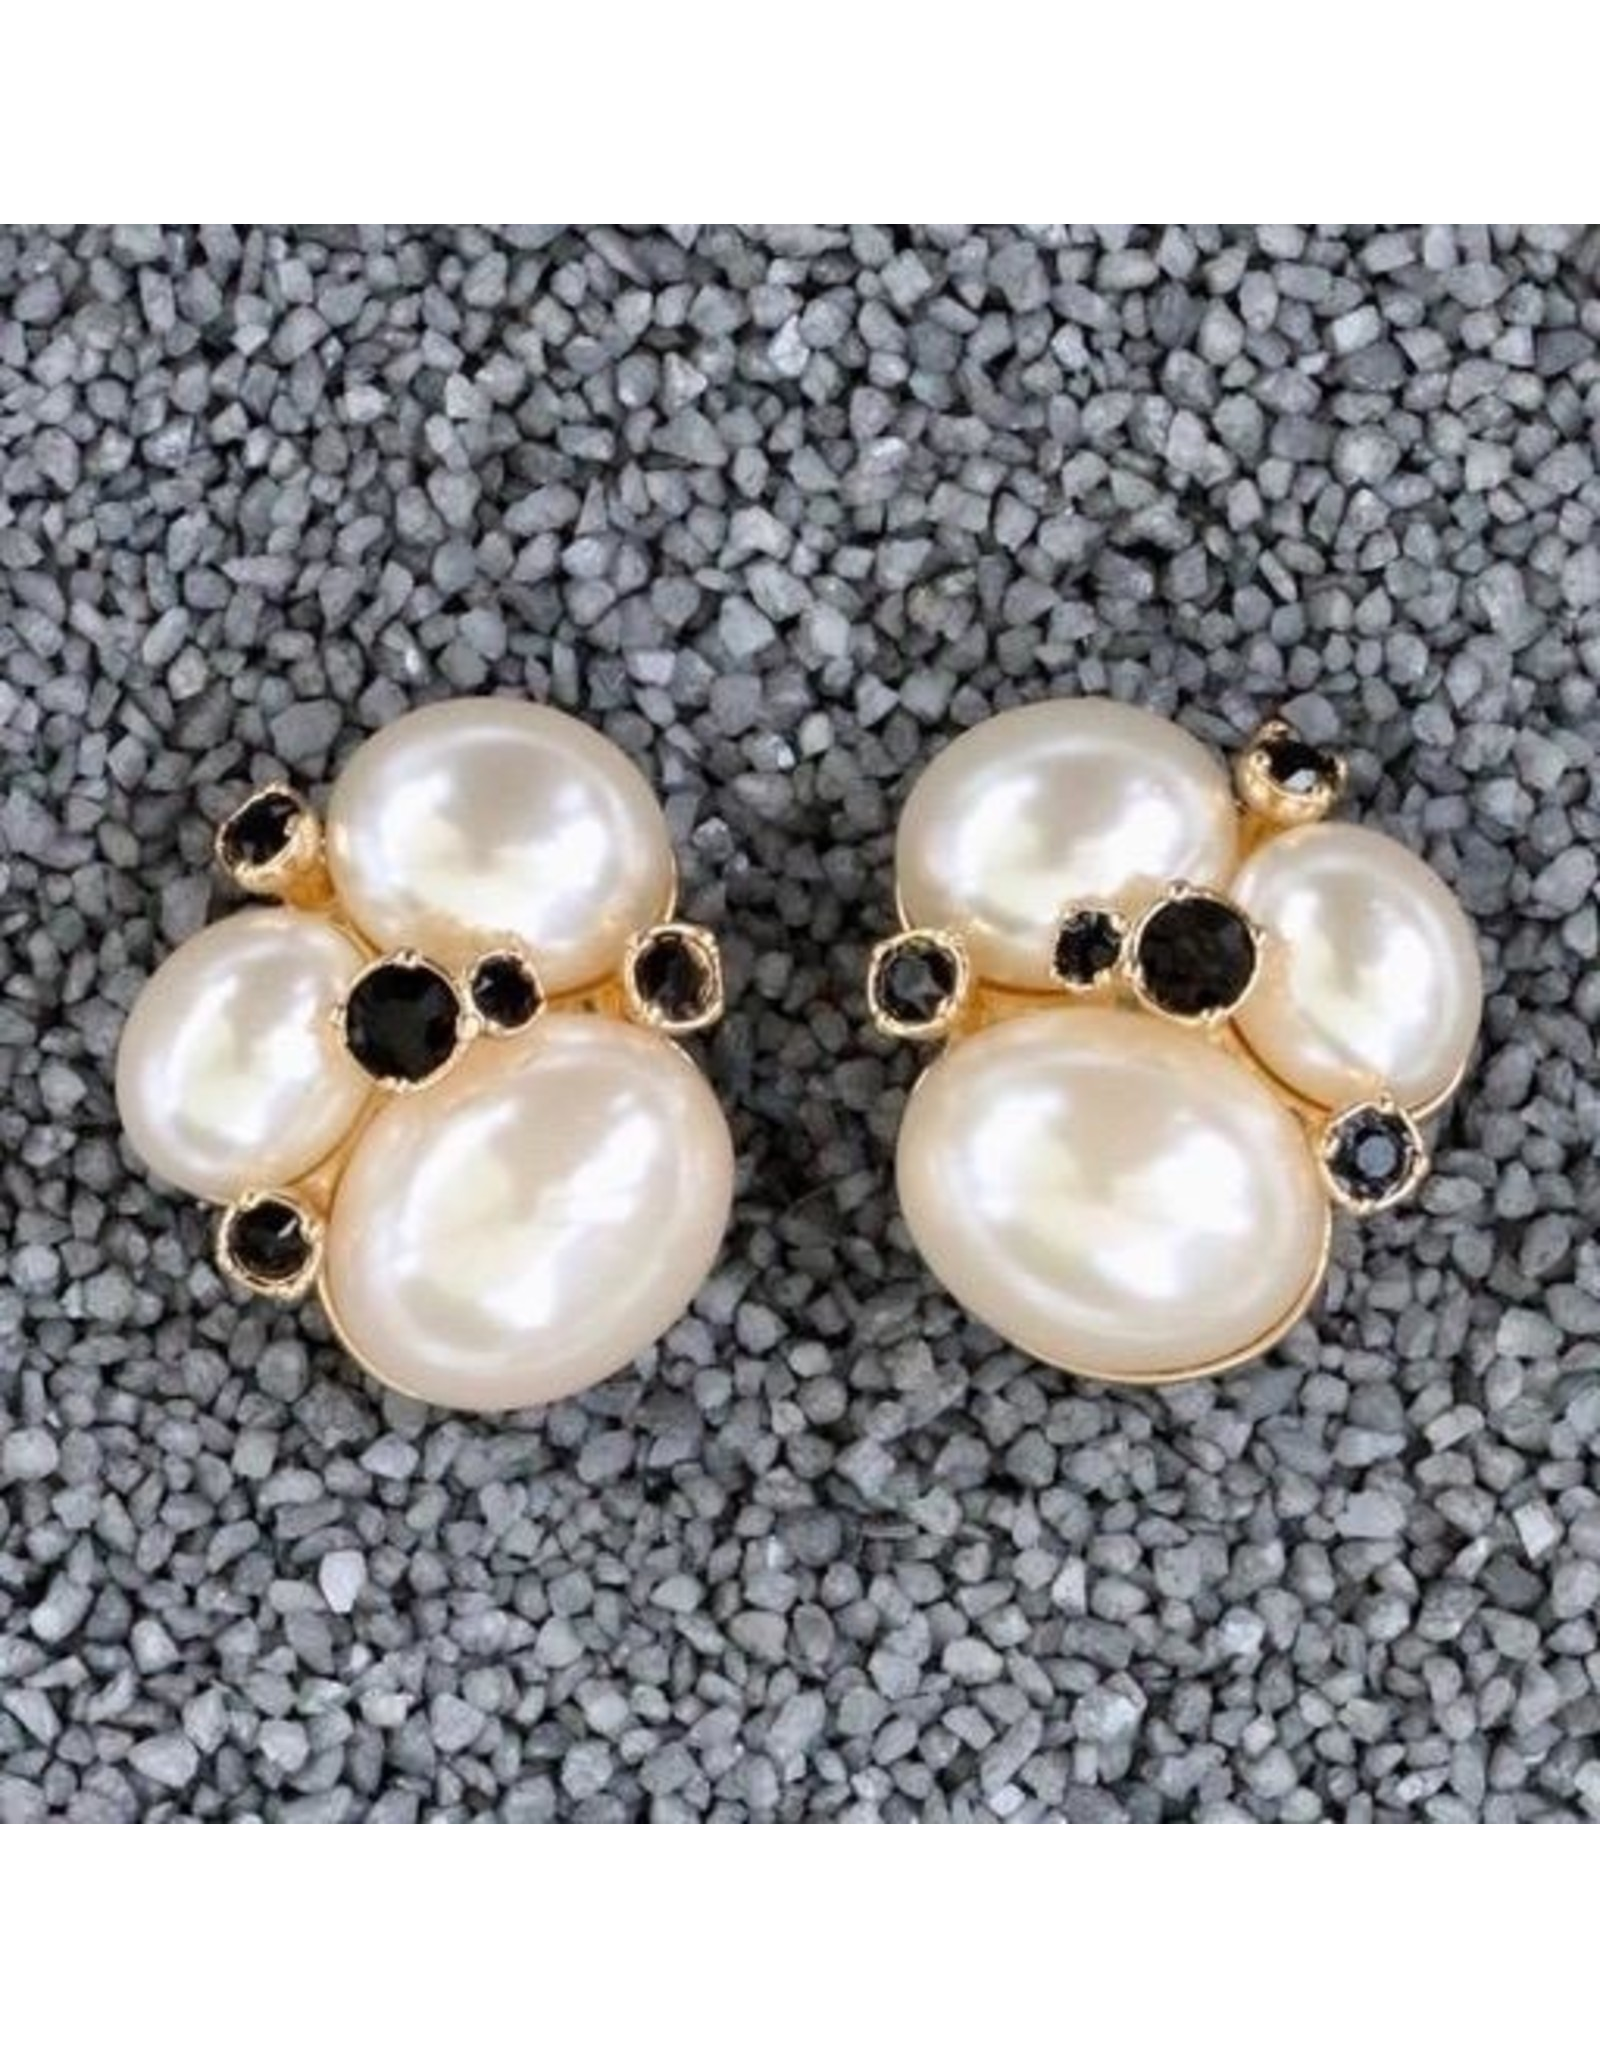 VC Italy VCExclusives: Three Large Stones w/Pearl<br /> Black Stones